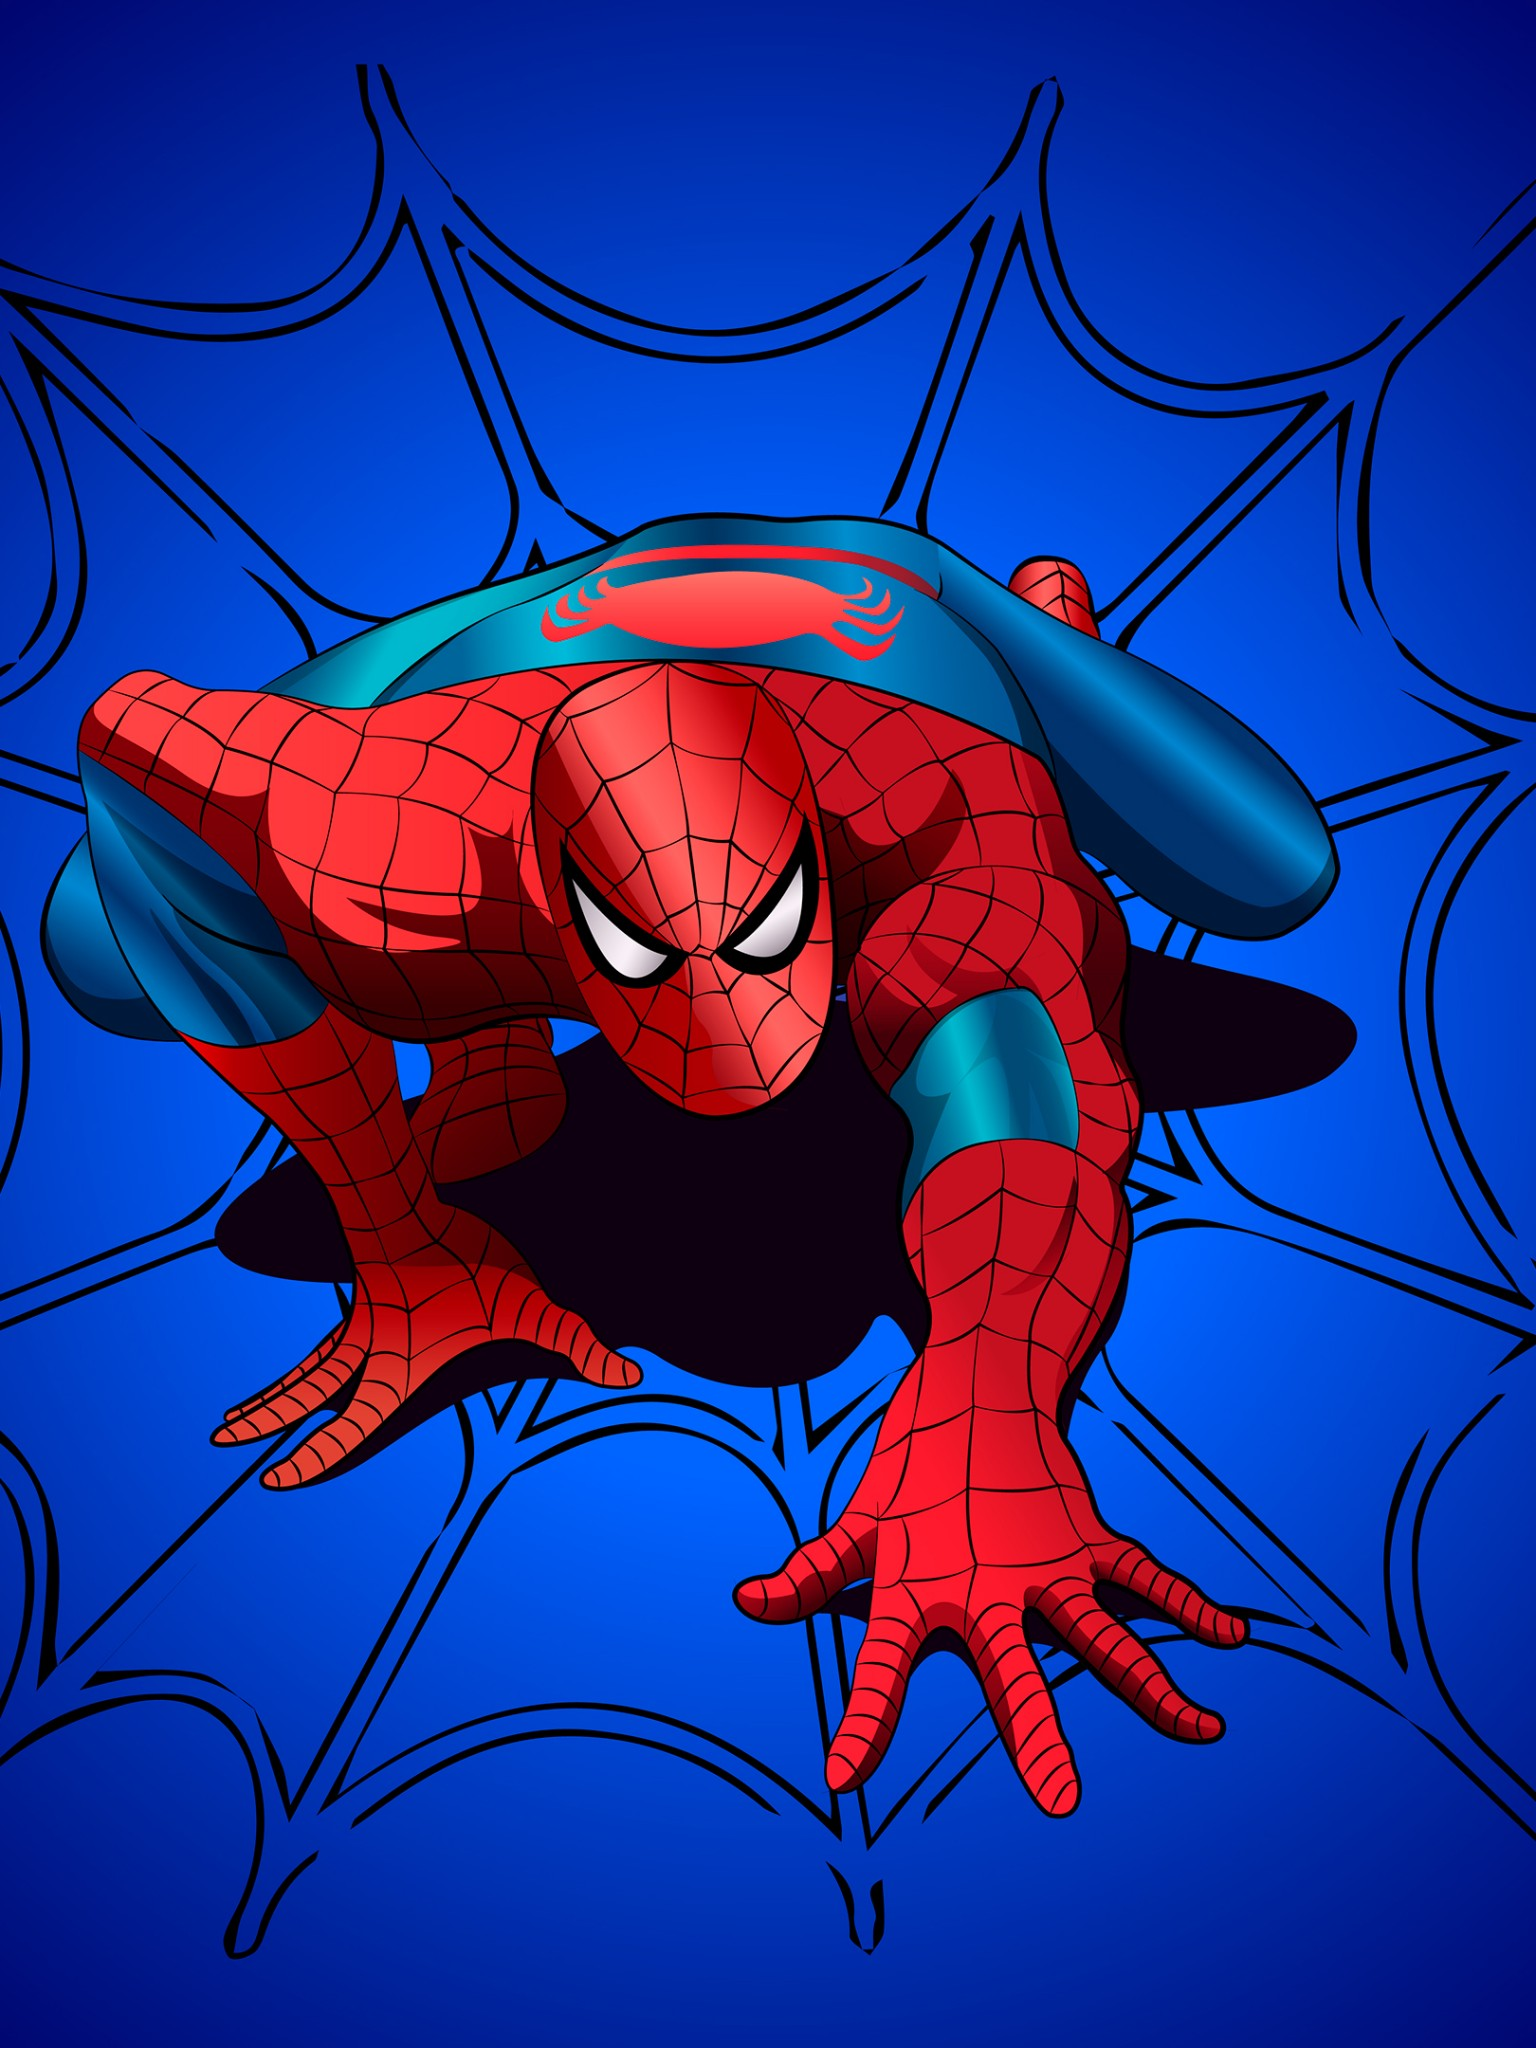 Storytime -- Spider-man Day